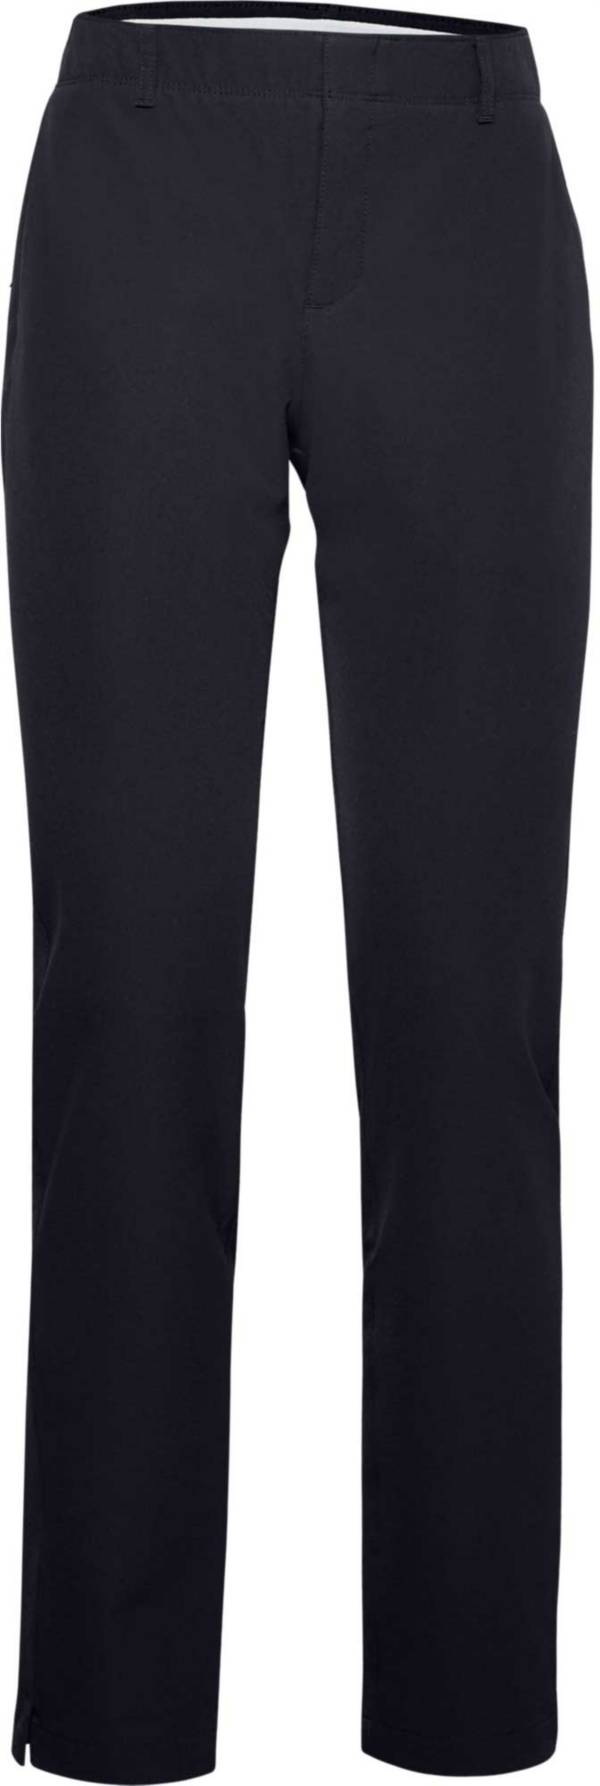 Under Armour Women's CGI Links Pant product image